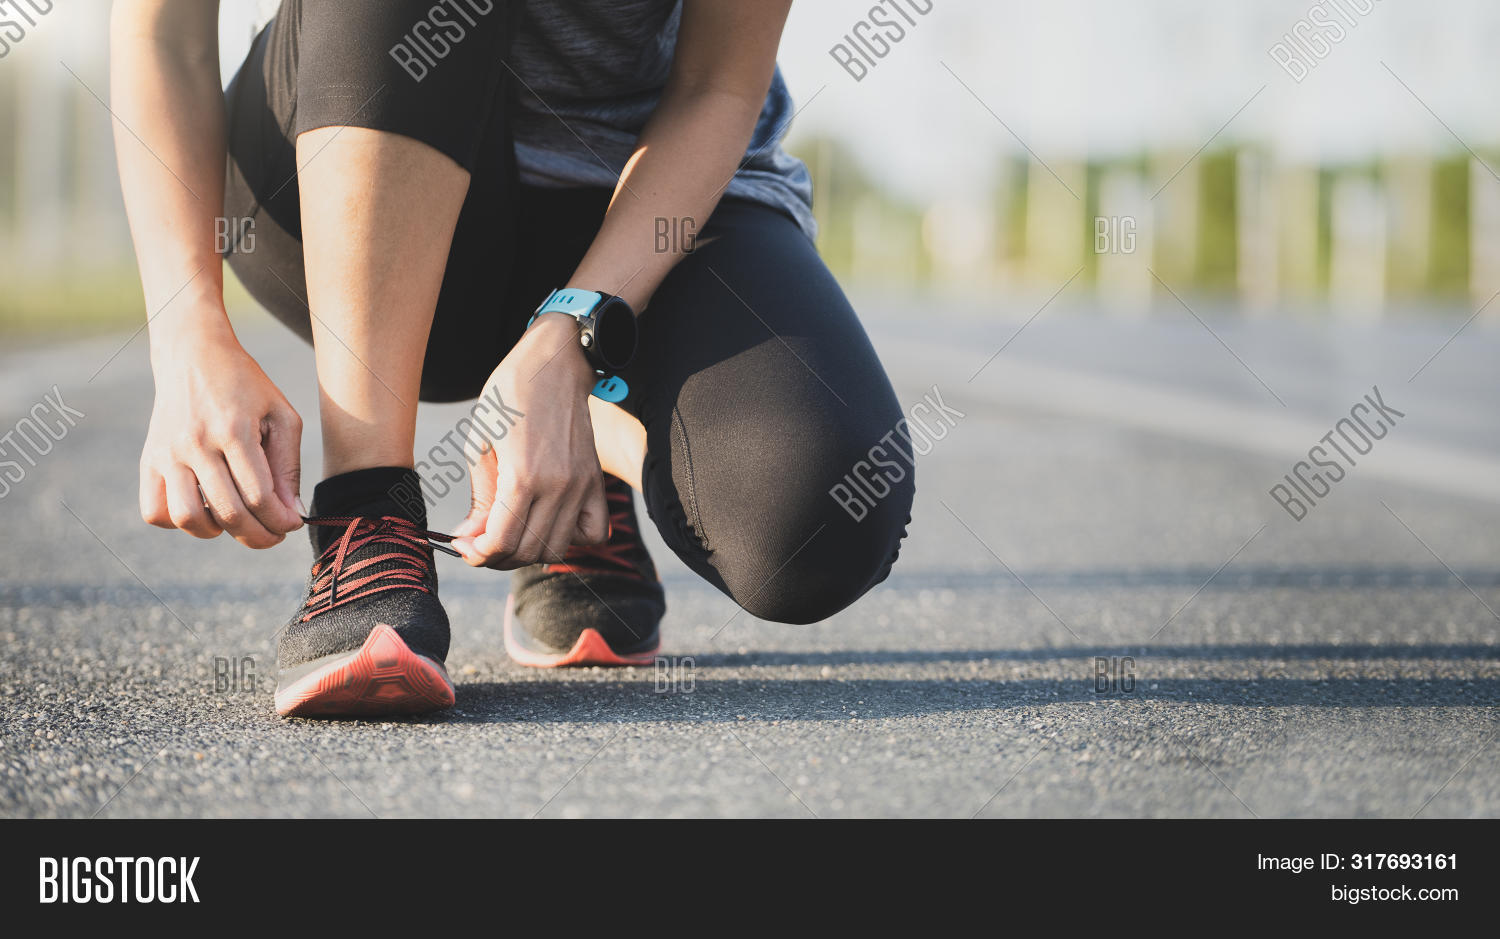 athlete,athletic,background,beautiful,black,driveway,exercise,feet,female,fit,fitness,foot,footwear,girl,happy,health,healthy,jogger,jogging,laces,leg,light,marathon,nature,outdoors,park,people,race,ready,road,runner,running,shoe,shoelace,sneakers,space,sport,sportswear,sunlight,tie,training,walking,wellness,woman,women,workout,young